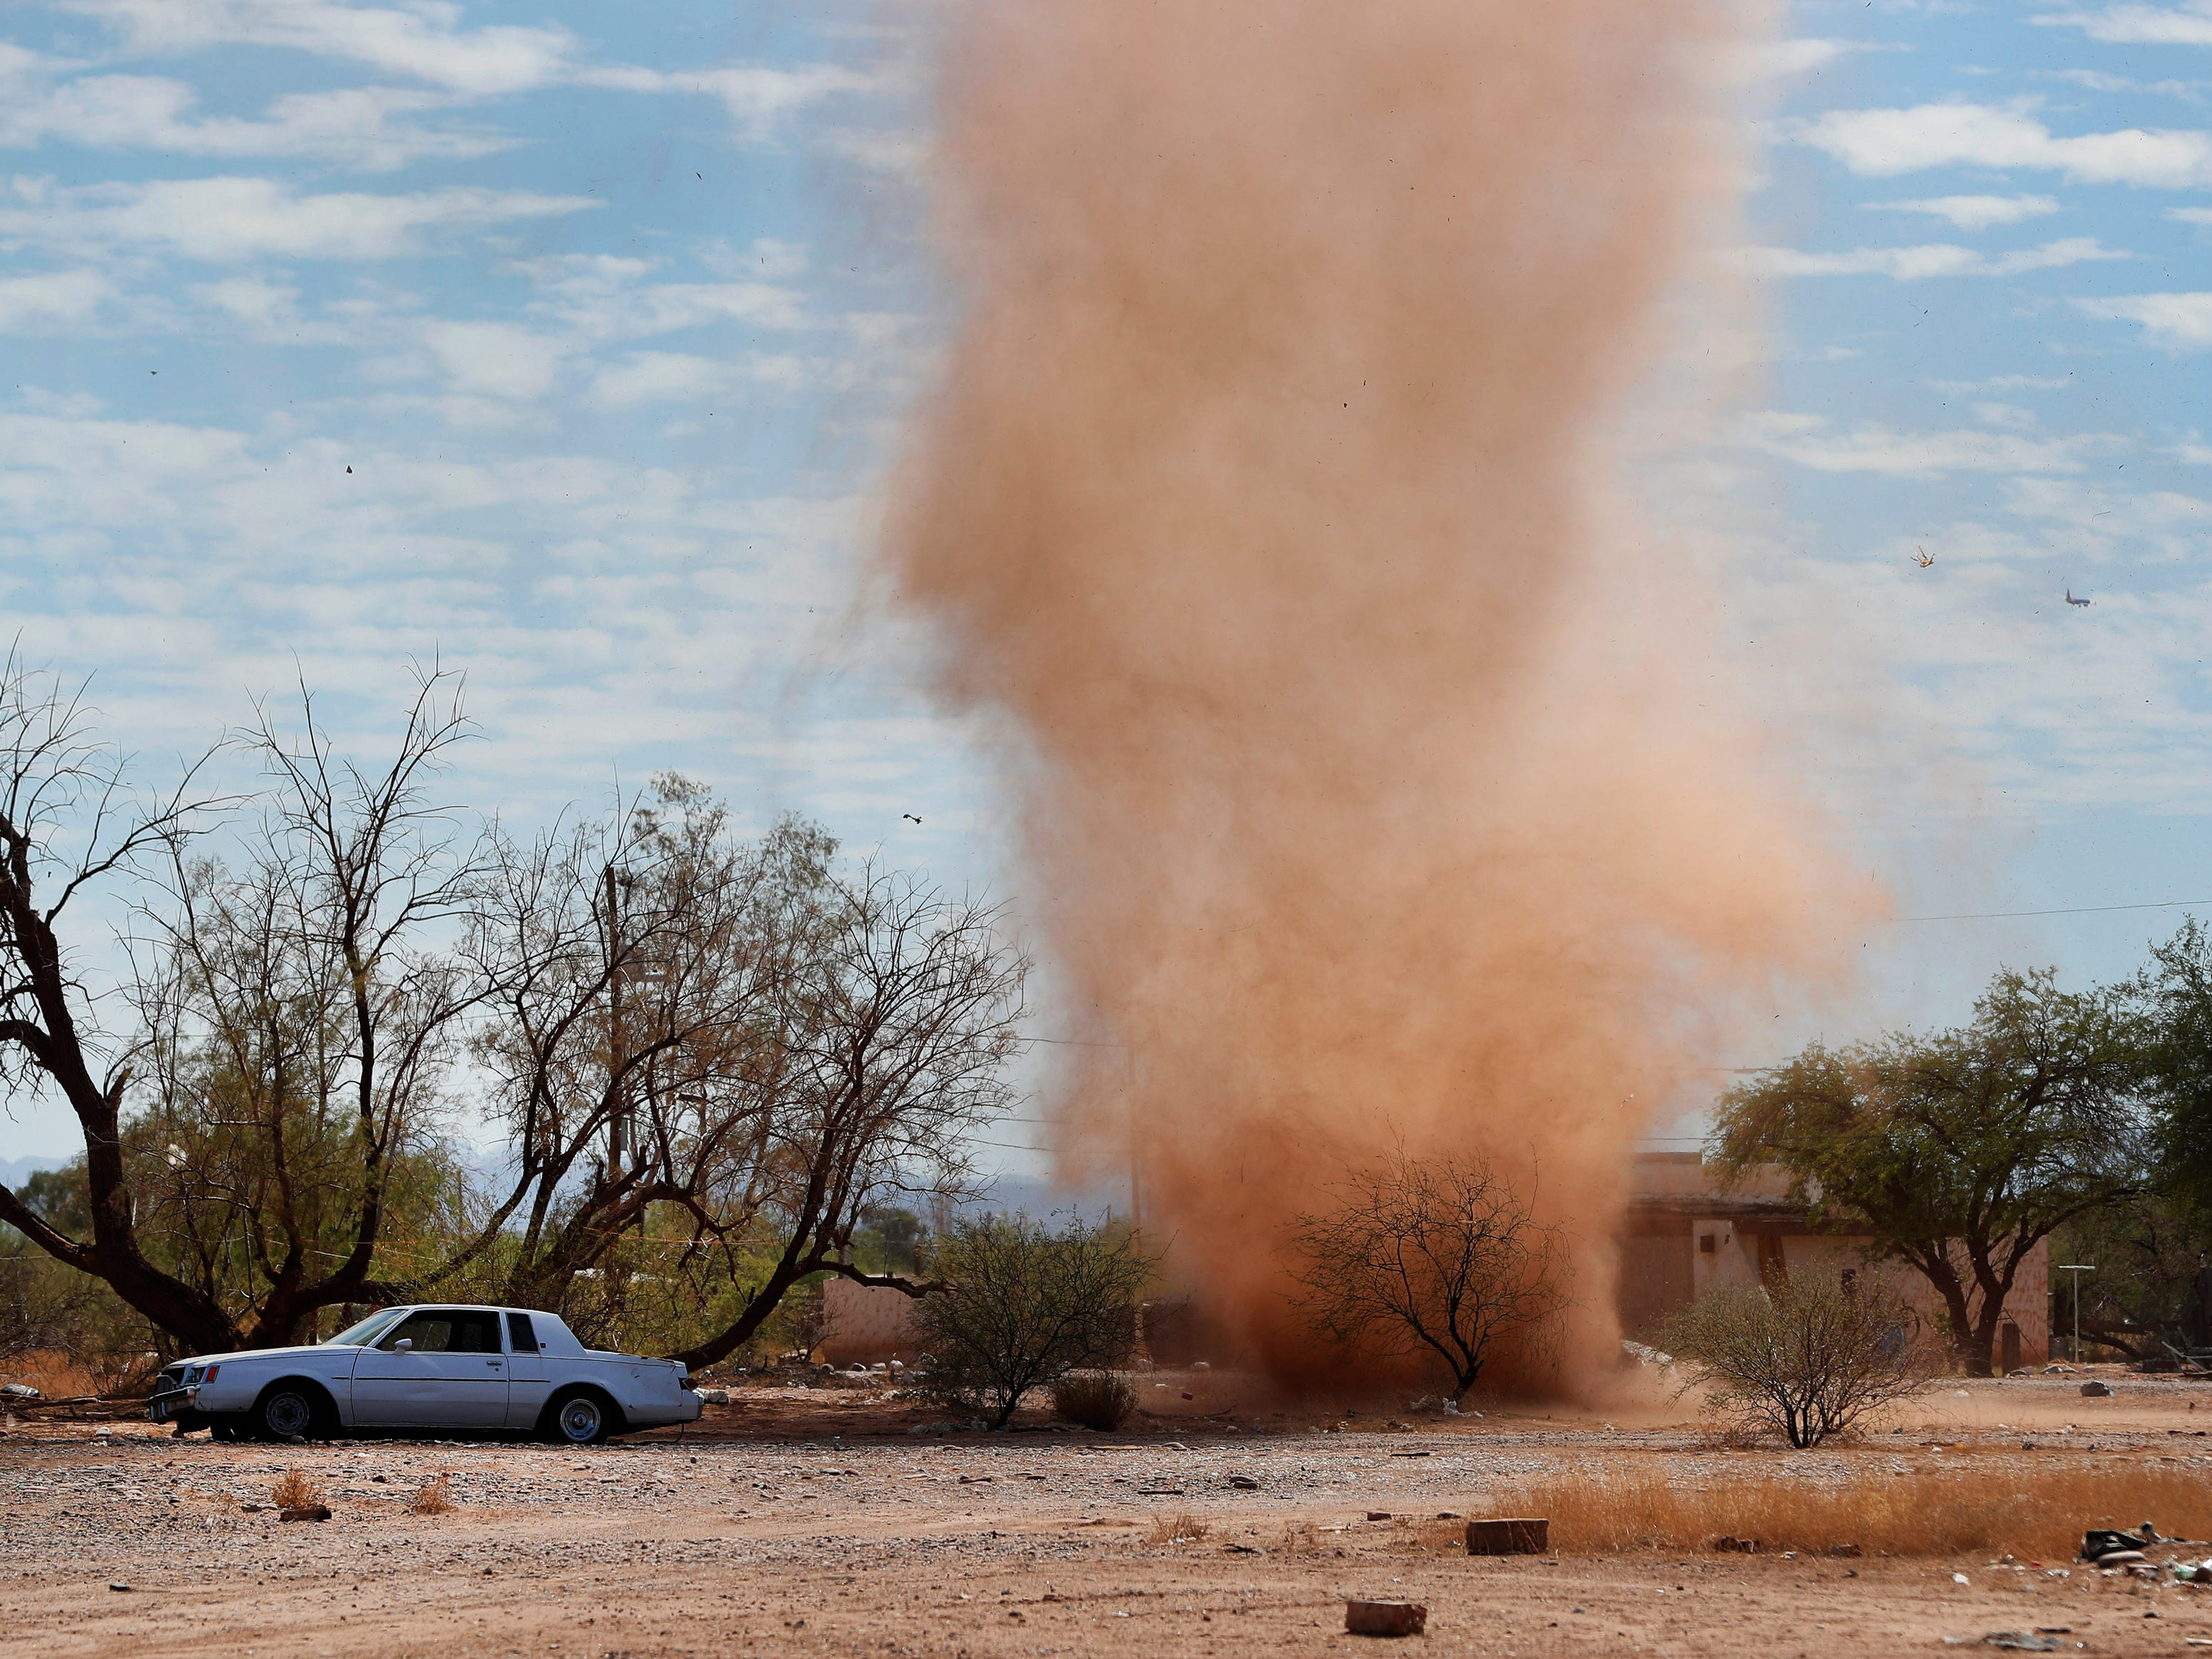 A dust devil rolls through the Salt River Pima-Maricopa Indian Reservation. Dust devils form when a pocket of hot air from the ground rises quickly through cooler air above it, forming an updraft.